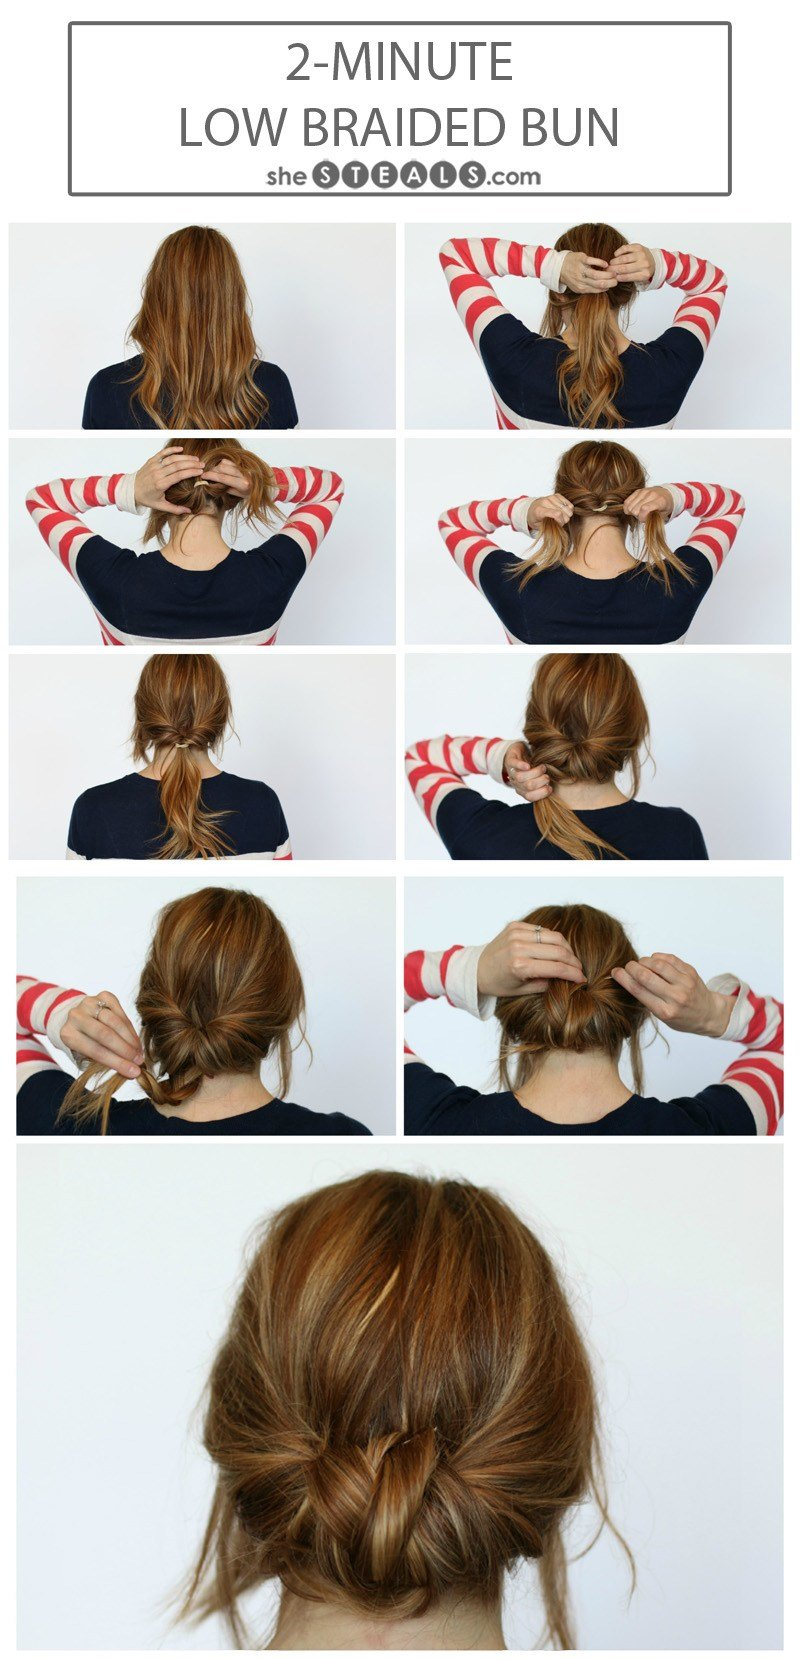 The Best 2 Minute Low Braided Bun Pictures